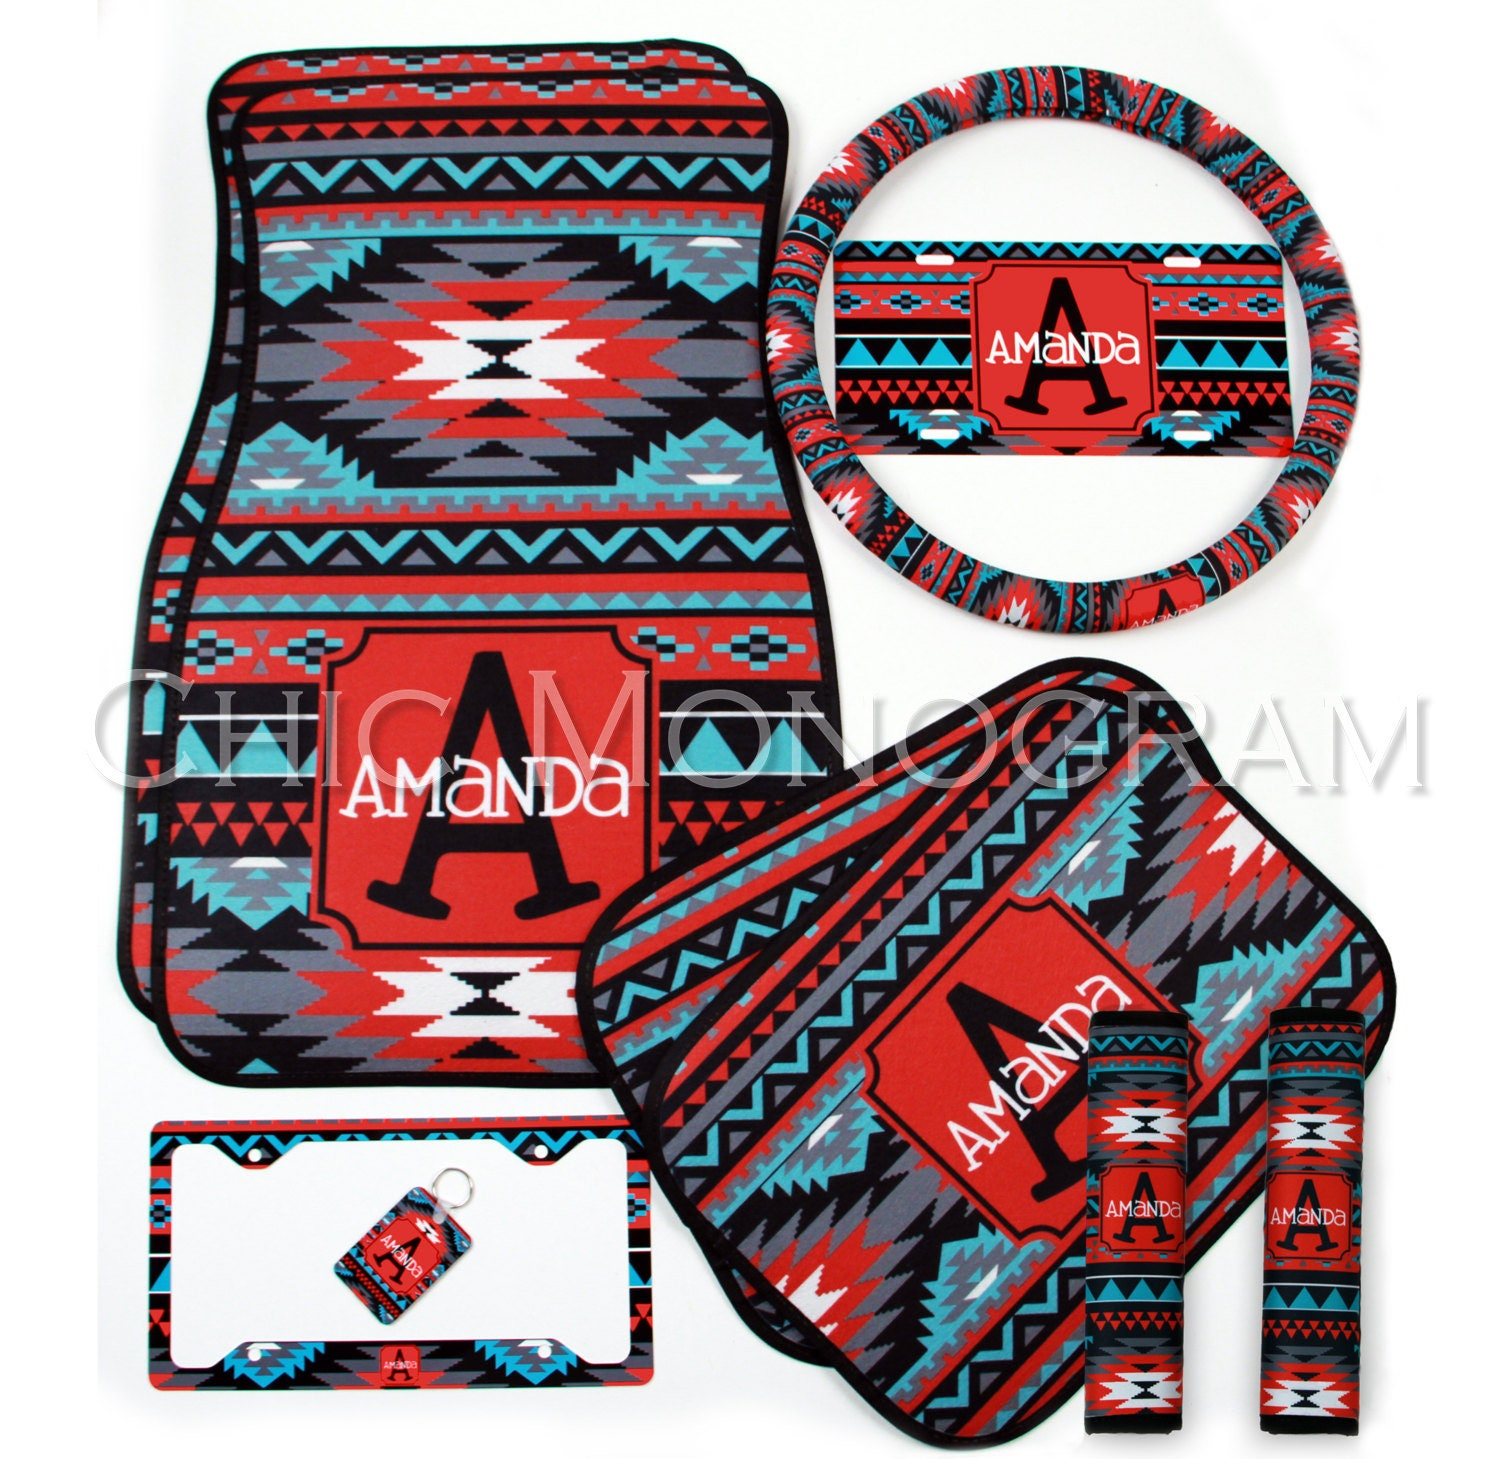 aztec tribal car accessories mix and match personalized car mats steering wheel cover license